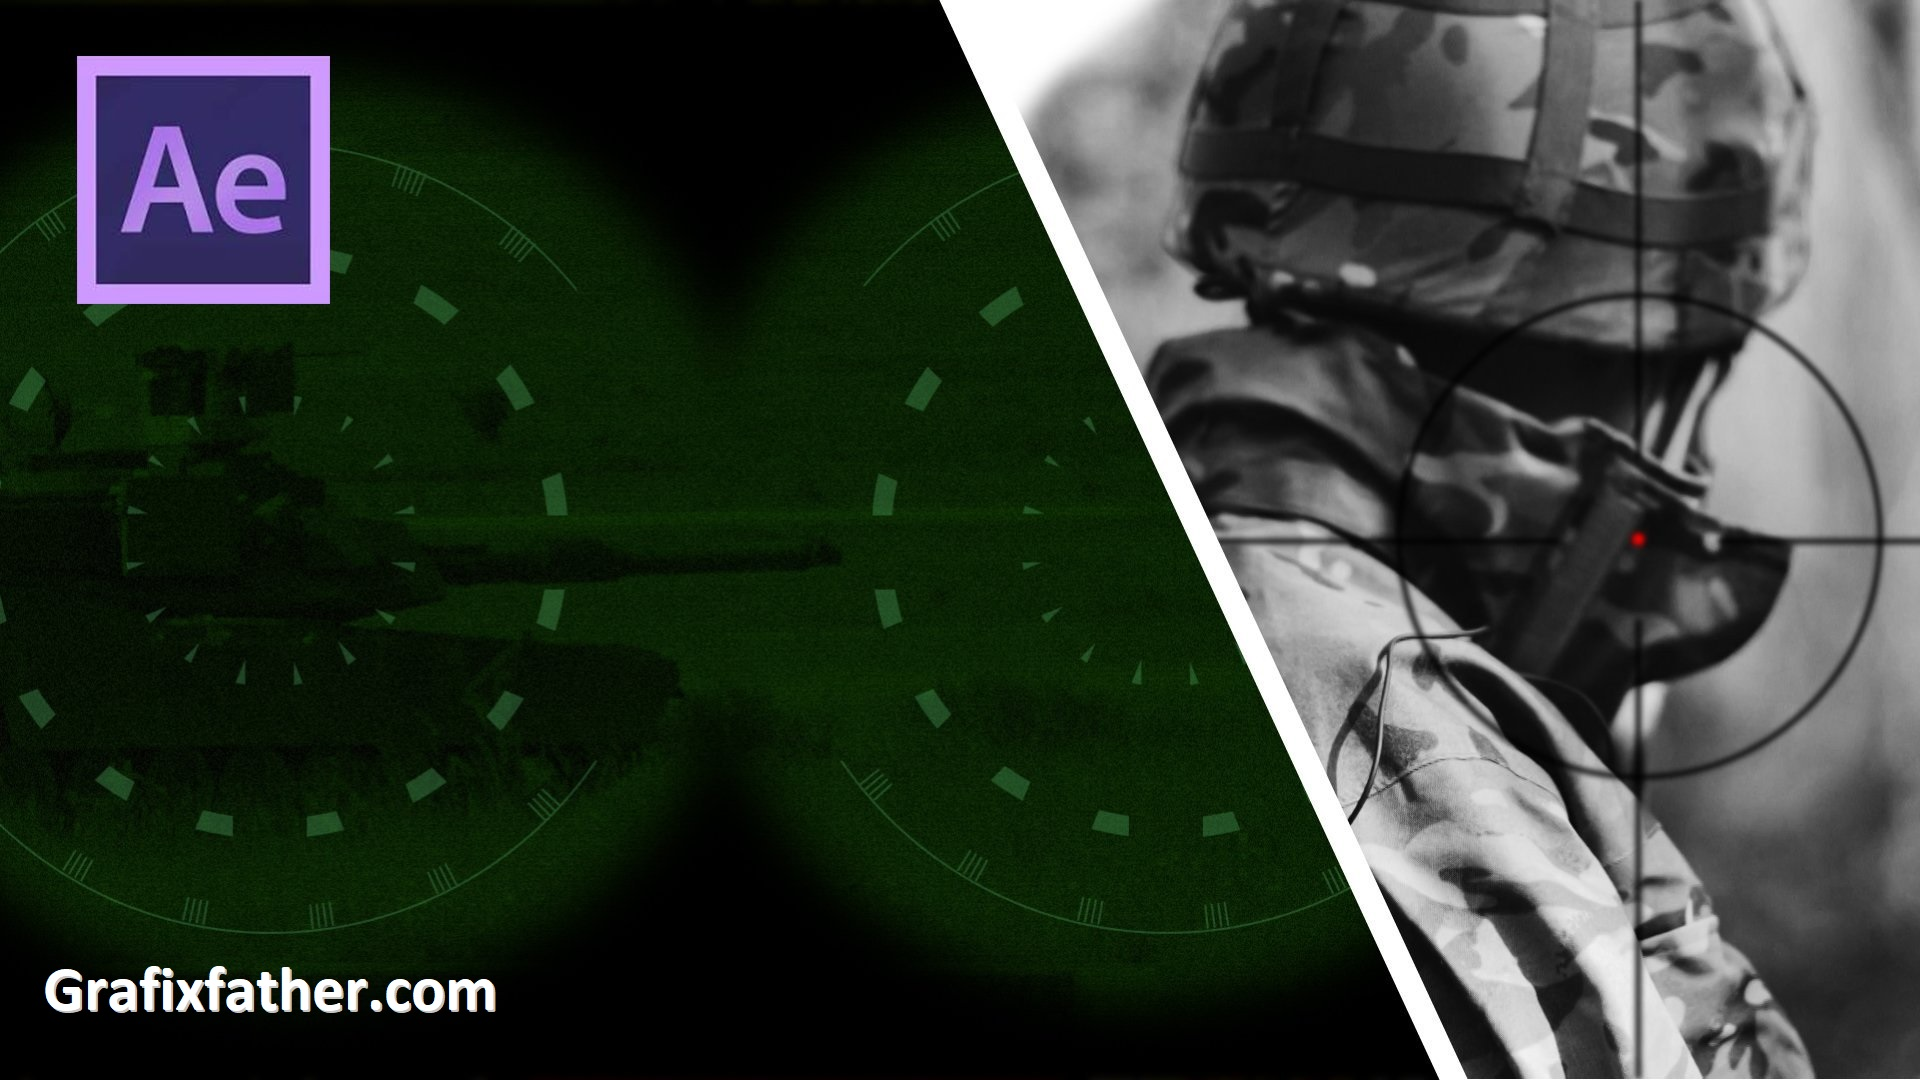 After Effects CC - Night Vision, Sniper Scope, Security Camera